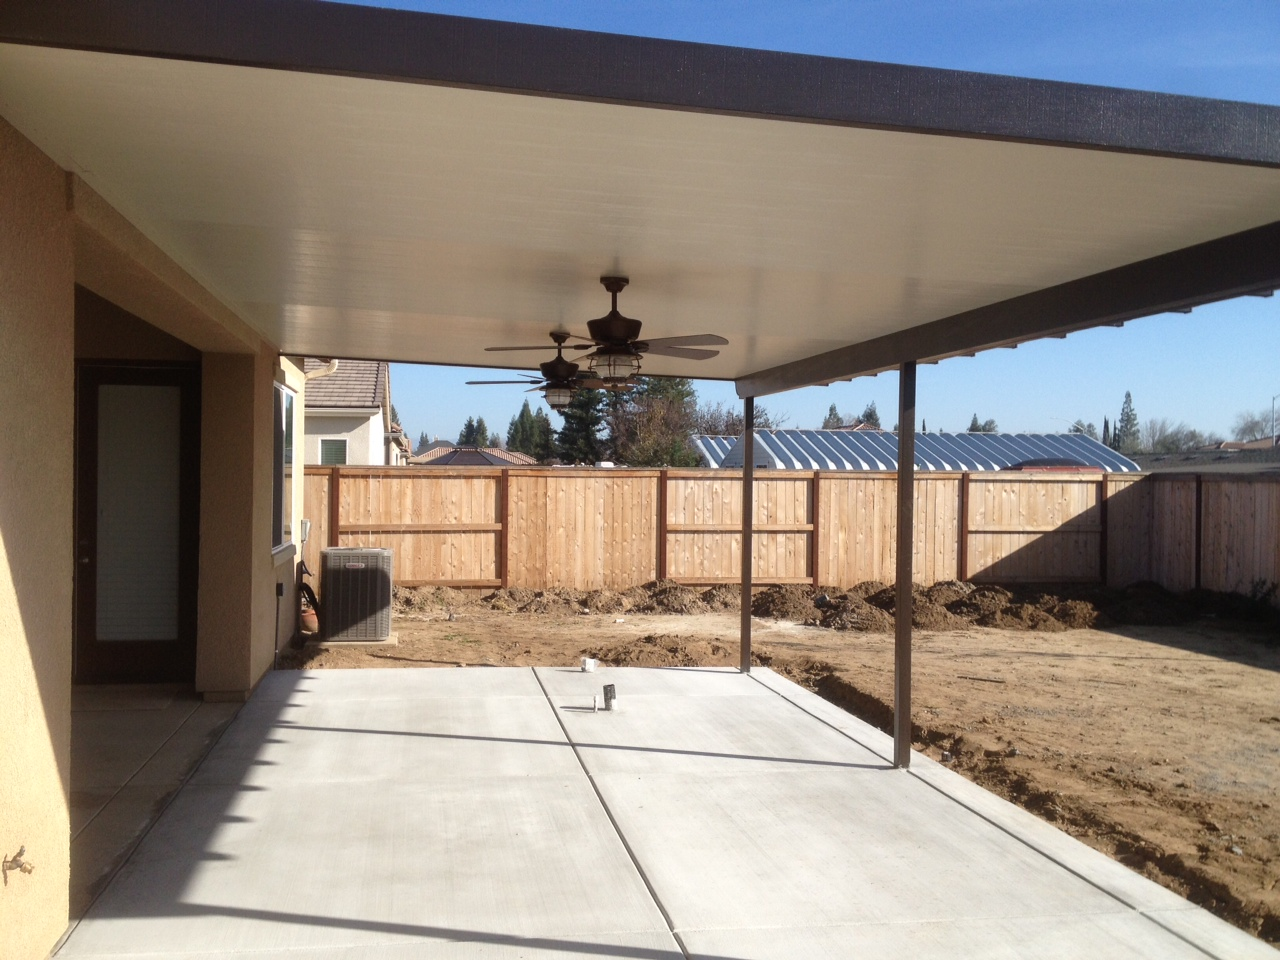 First Off, We Have An Image Of The Backyard Patio Thatu0027s Been Cleared And  Prepared For The BBQ Island And Grill.